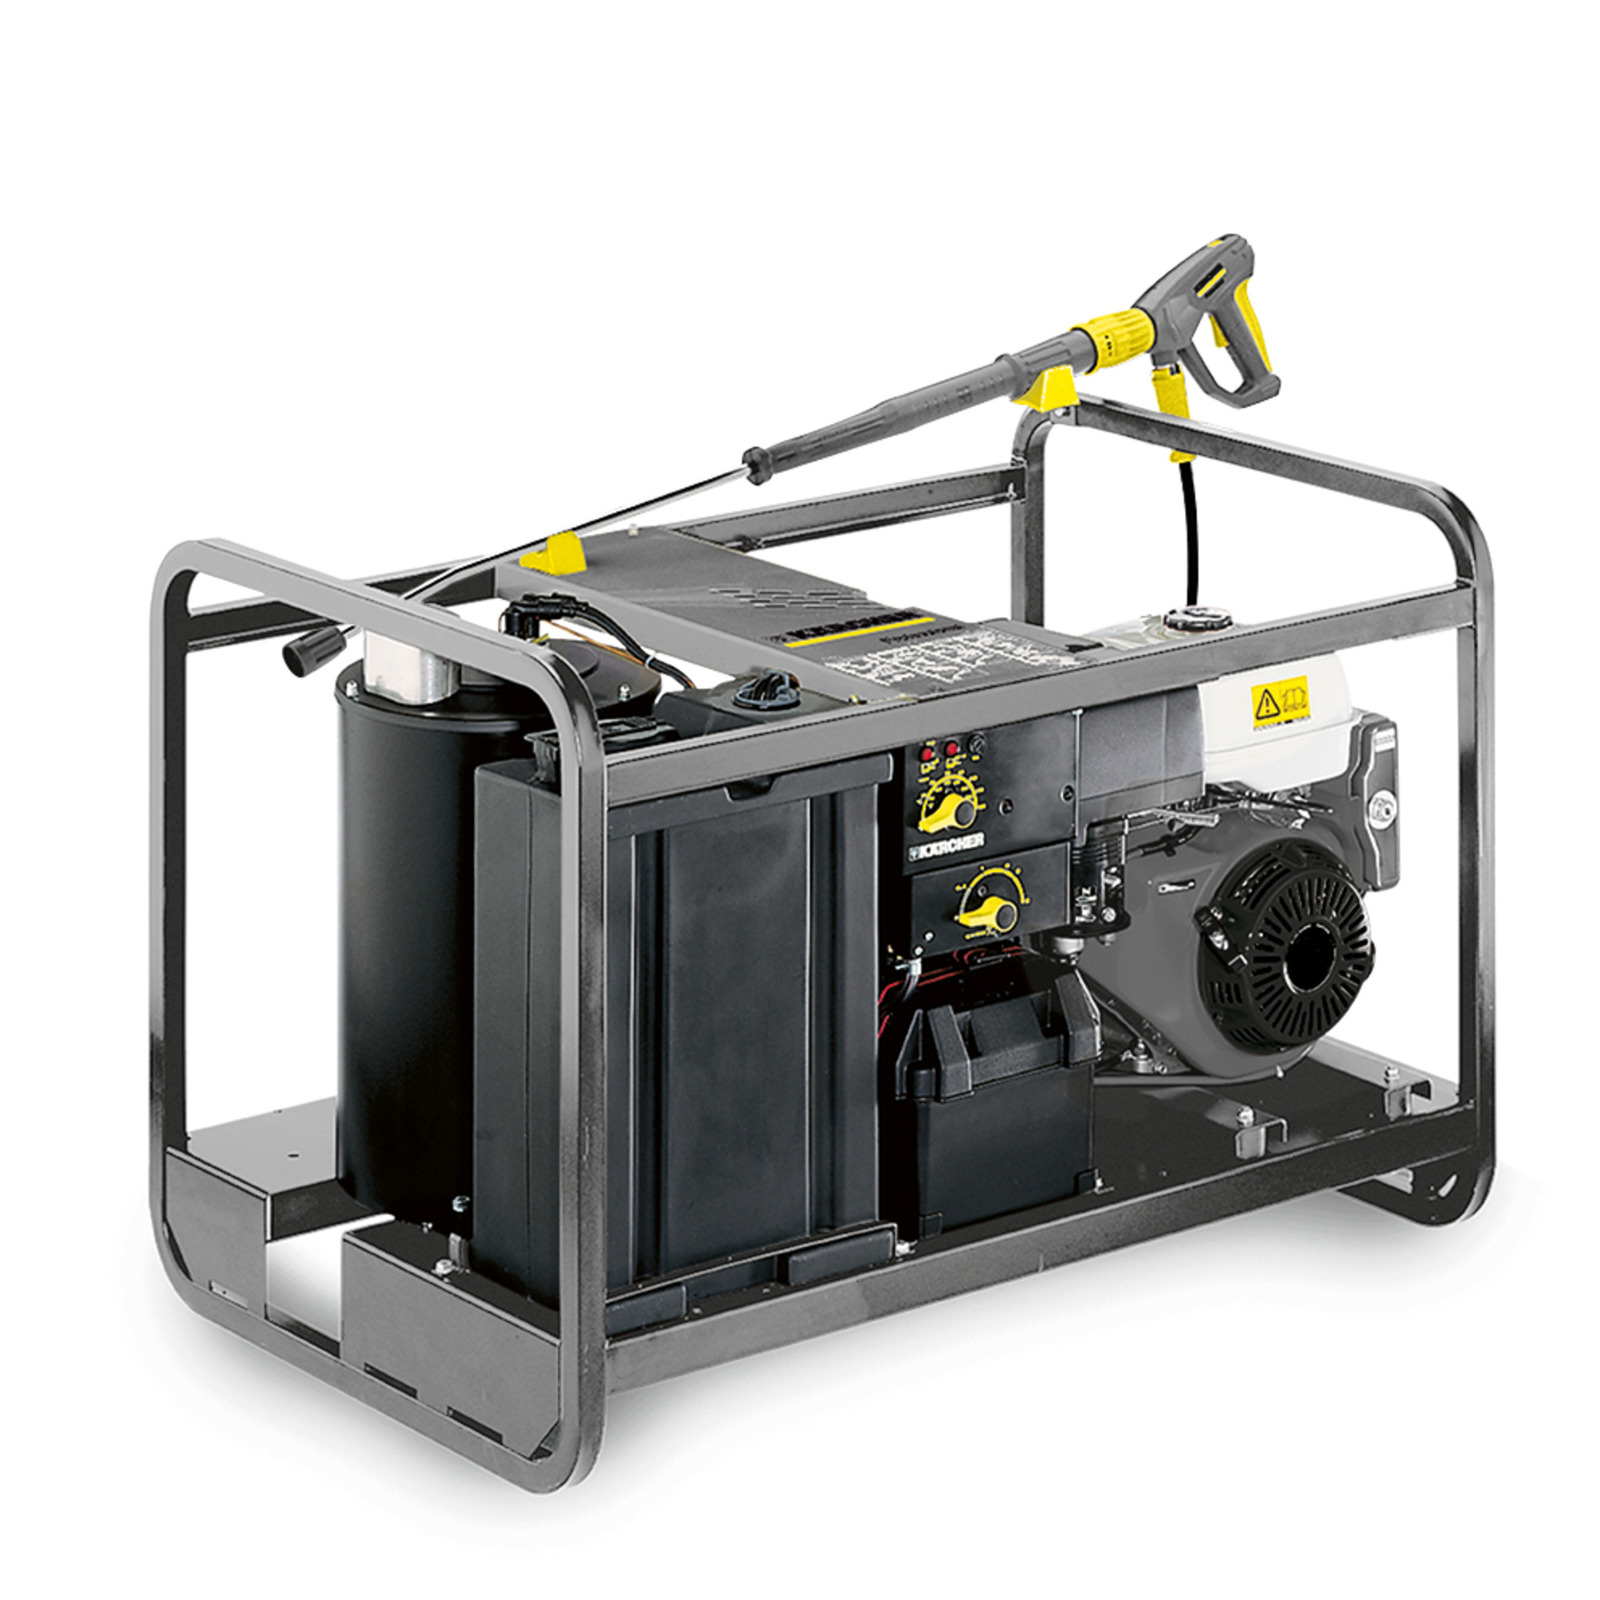 Karcher Engine Driven High Pressure Cold Water Cleaner HDS 1000